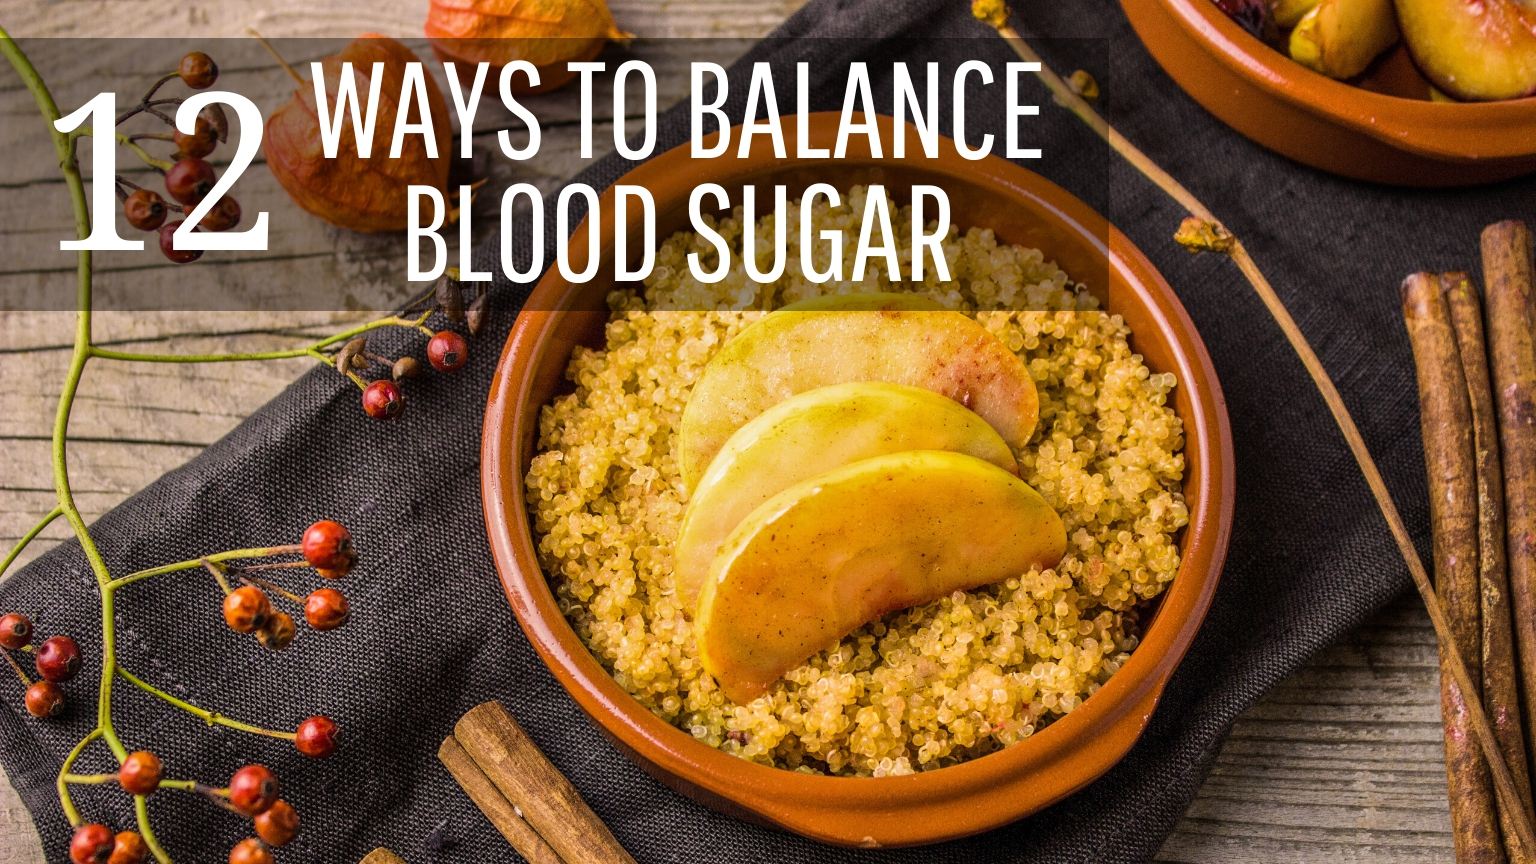 How To Balance Blood Sugar